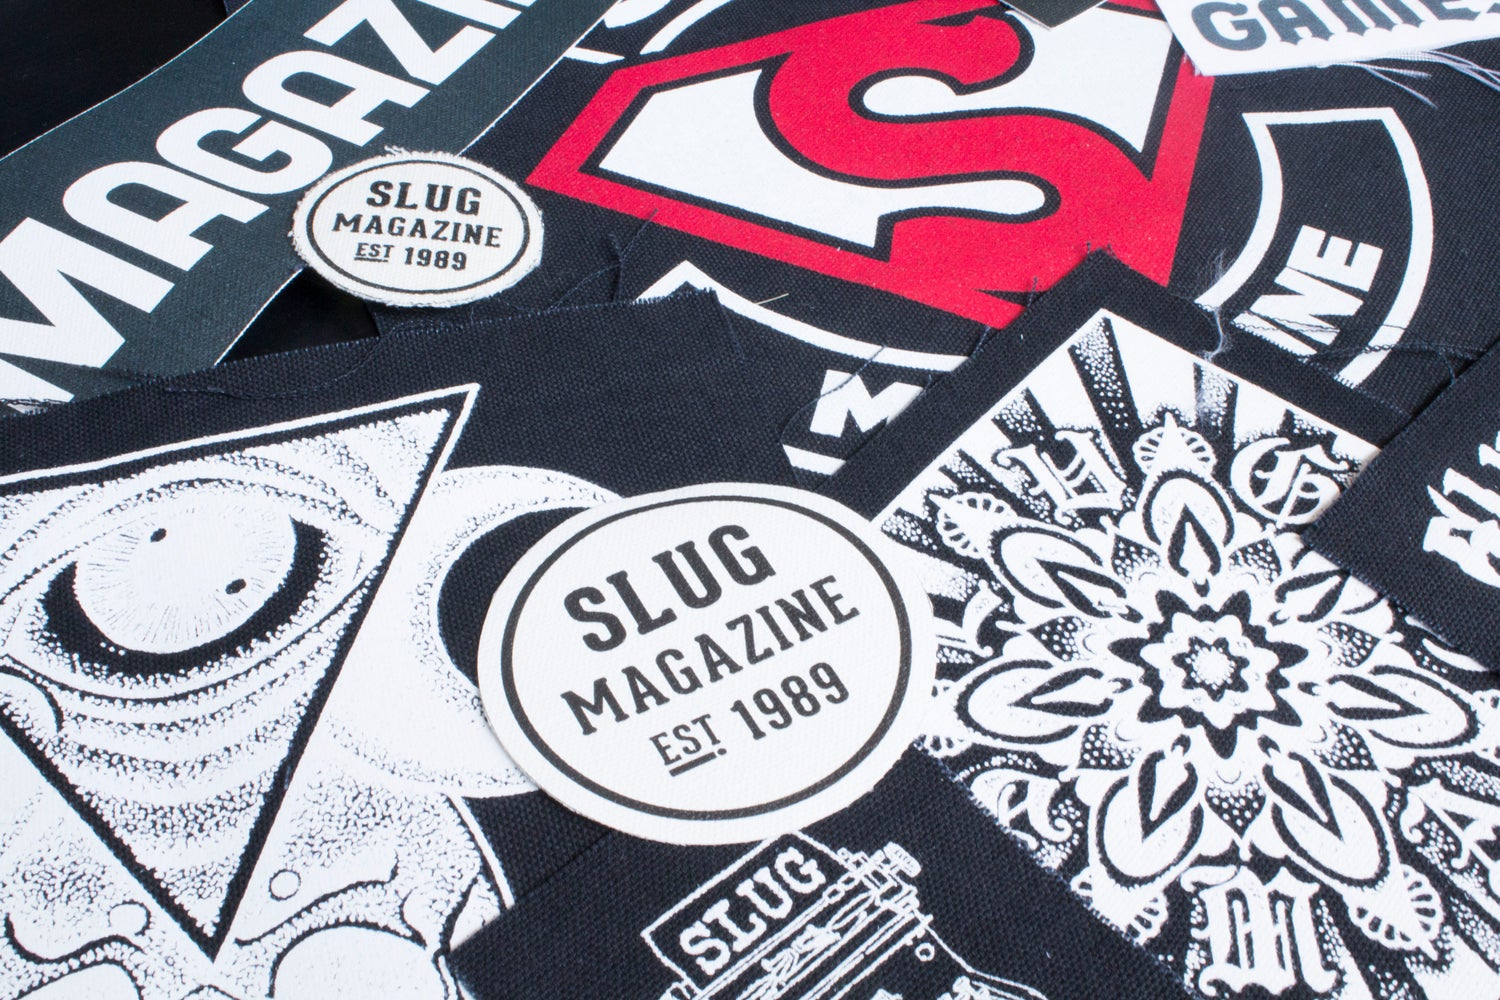 SLUG Mag Patch FREE with purchase!